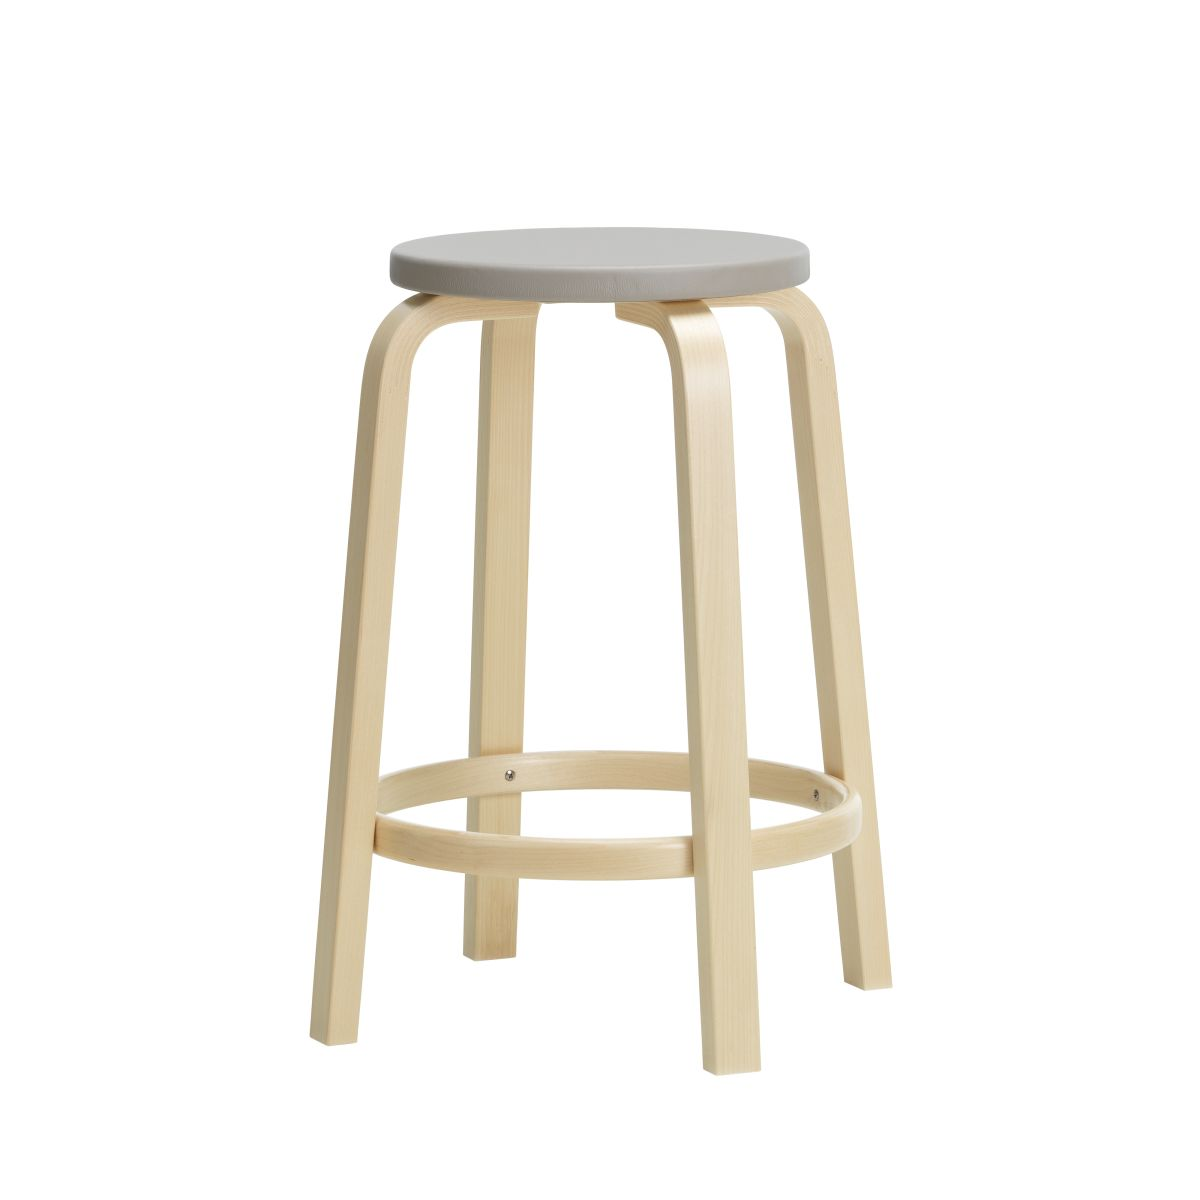 Bar-Stool-64-65cm-natural-upholstery-Sörensen-Prestigue-beige-w-o-padding_F-2868277